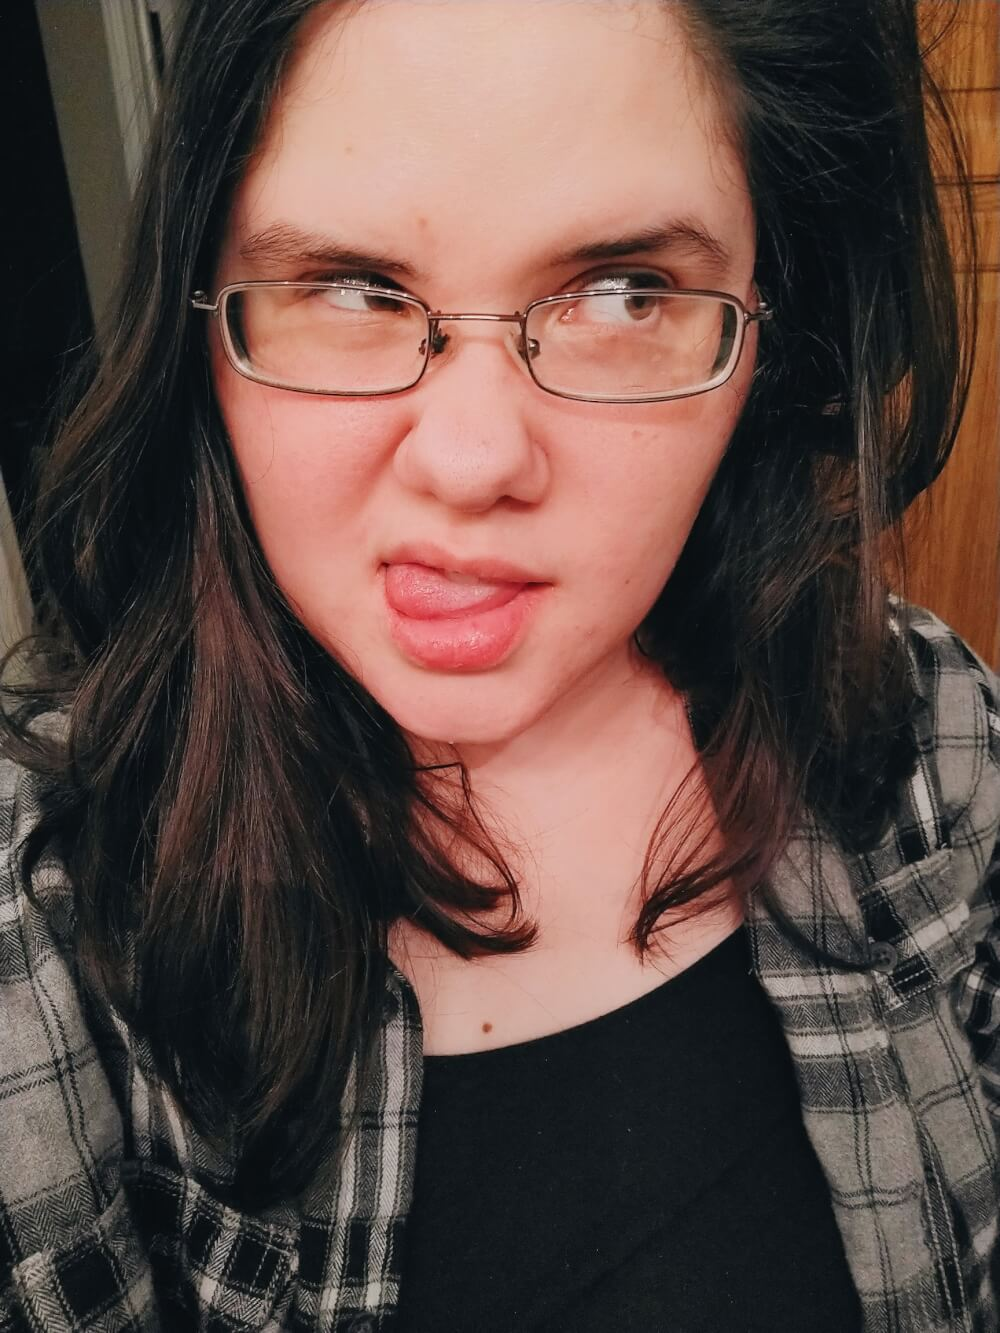 Silly selfie in black plaid flannel with tongue out